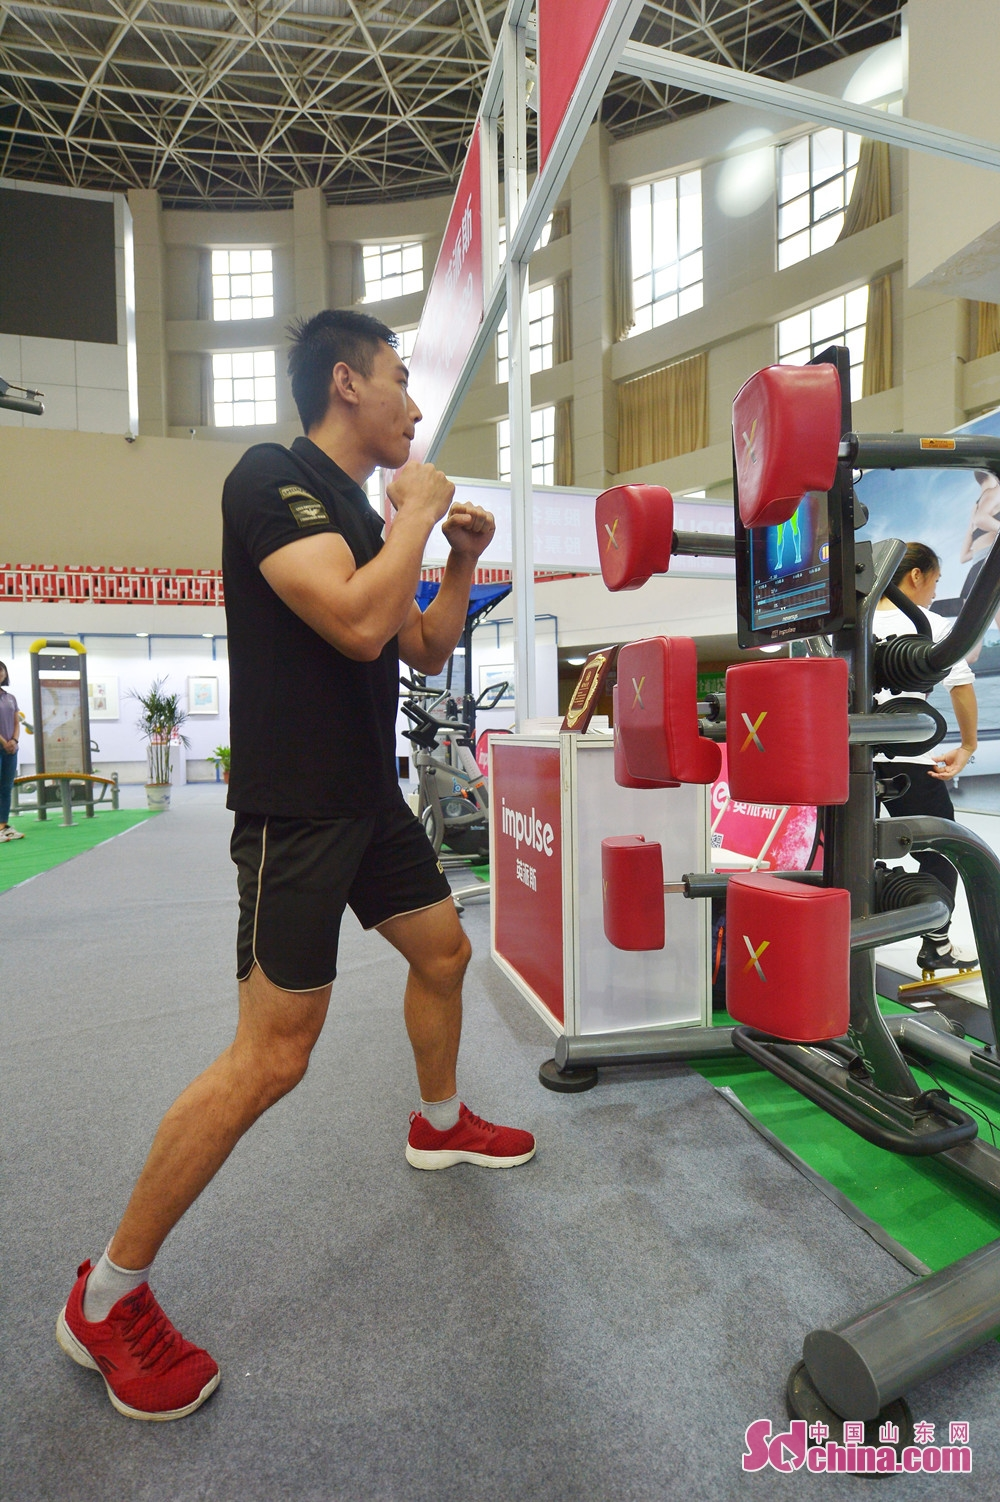 A visitor experiences new technologies in sports duiring the &quot;Intelligence + Sports&quot; national fitness week in Qingdao. The 2018 Memory of Shibei &quot;Intelligence + Sports&quot; national fitness week kicked off in Qingdao, Shandong Province, on September 20, 2018.<br/>